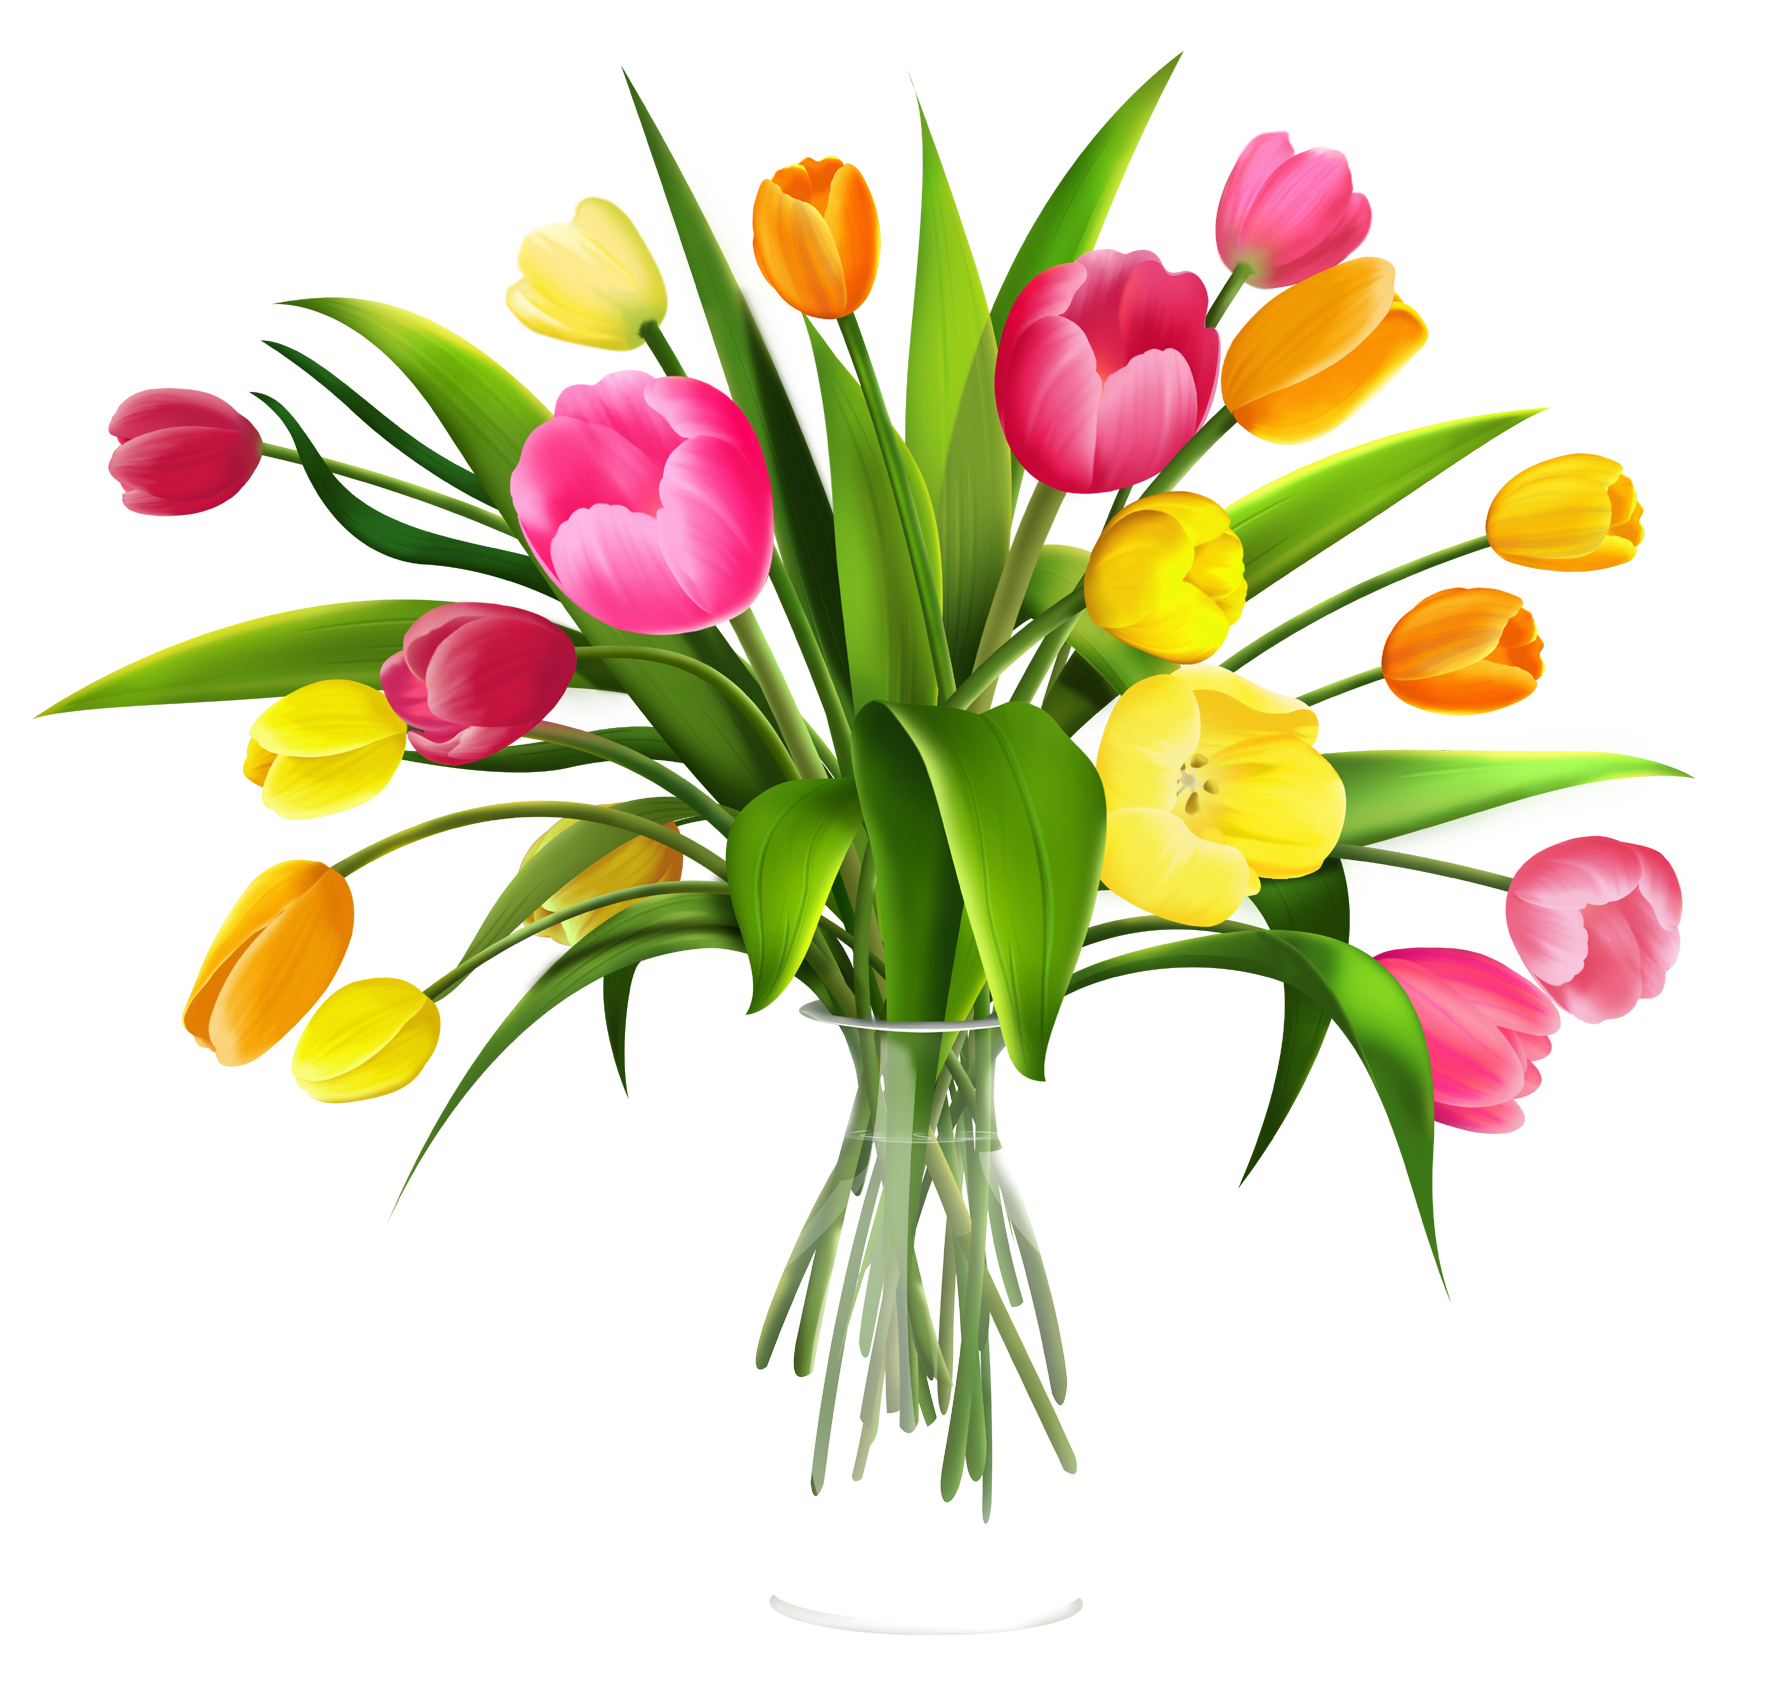 Clipart bunch of flowers vector transparent download Free Clip Art Flowers in Vase | Use these free images for your ... vector transparent download